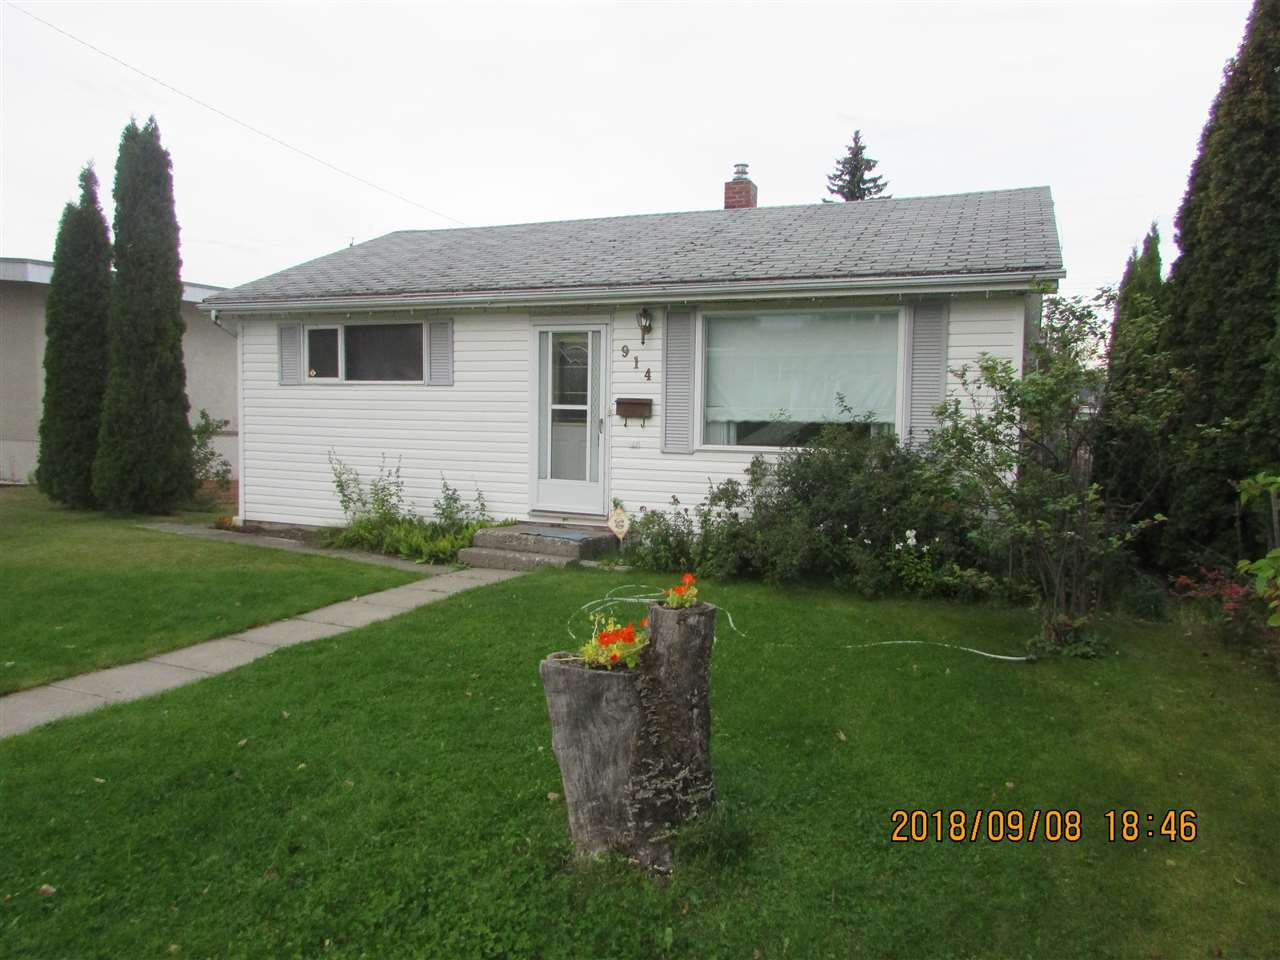 Main Photo: 914 EWERT Street in Prince George: Central House for sale (PG City Central (Zone 72))  : MLS®# R2305037